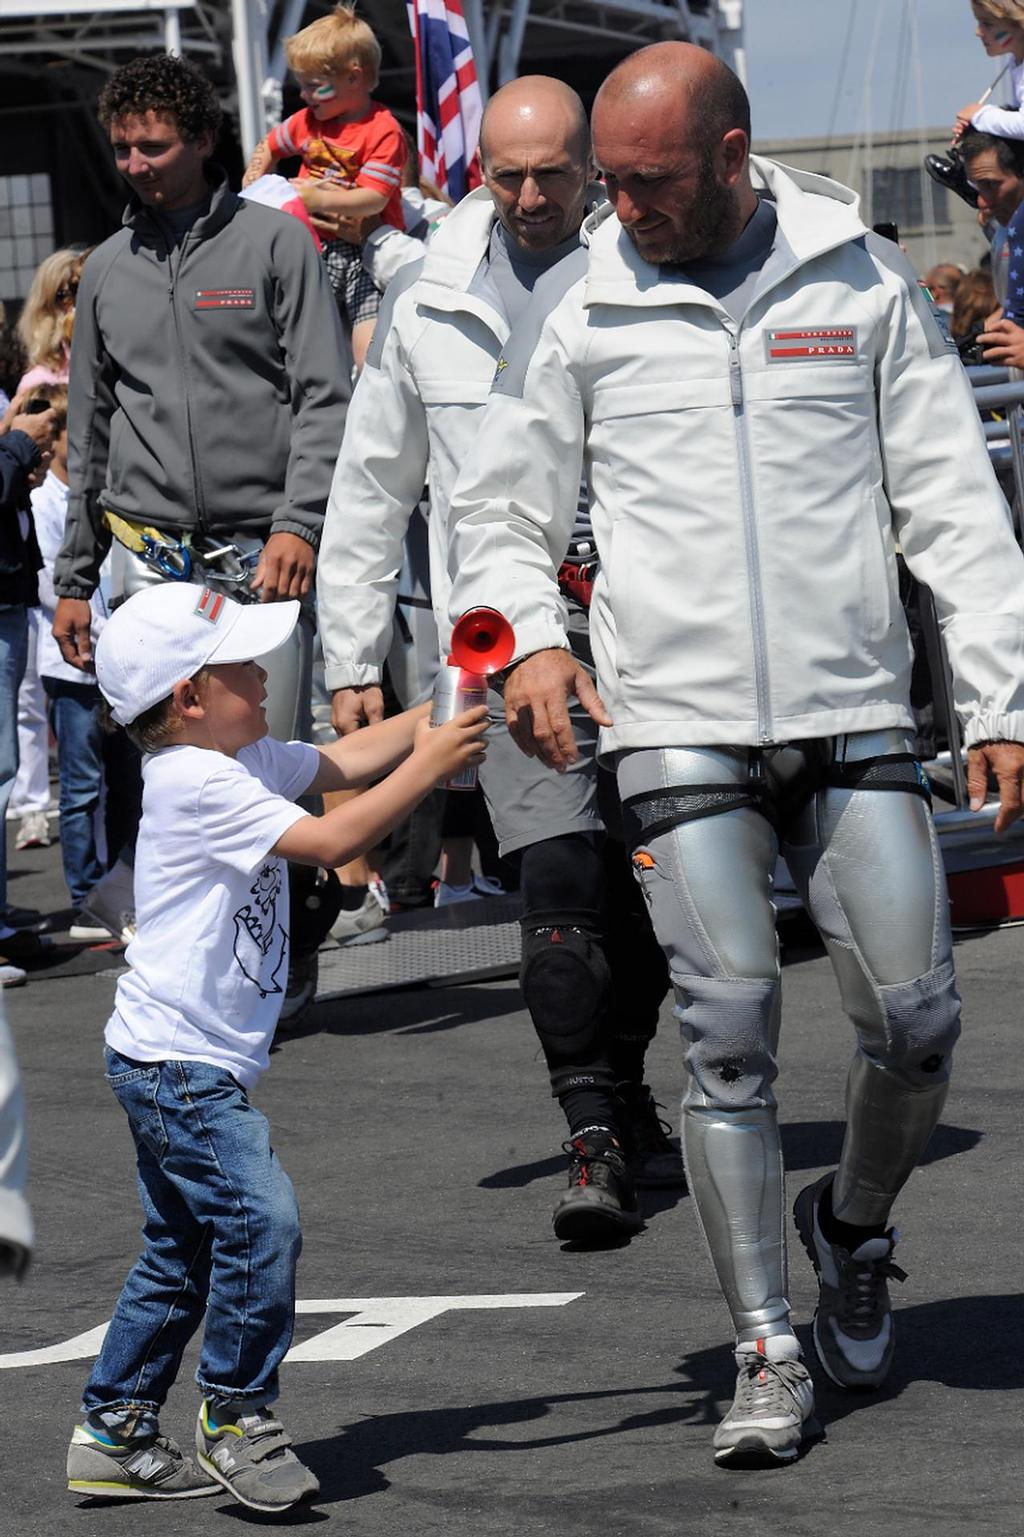 Max Sirena's son Lorenzo, 4, wants to give his Dad a horn before he goes out to sail on August 21, 2013 at the Louis Vuitton Cup in San Francisco California. ©  SW